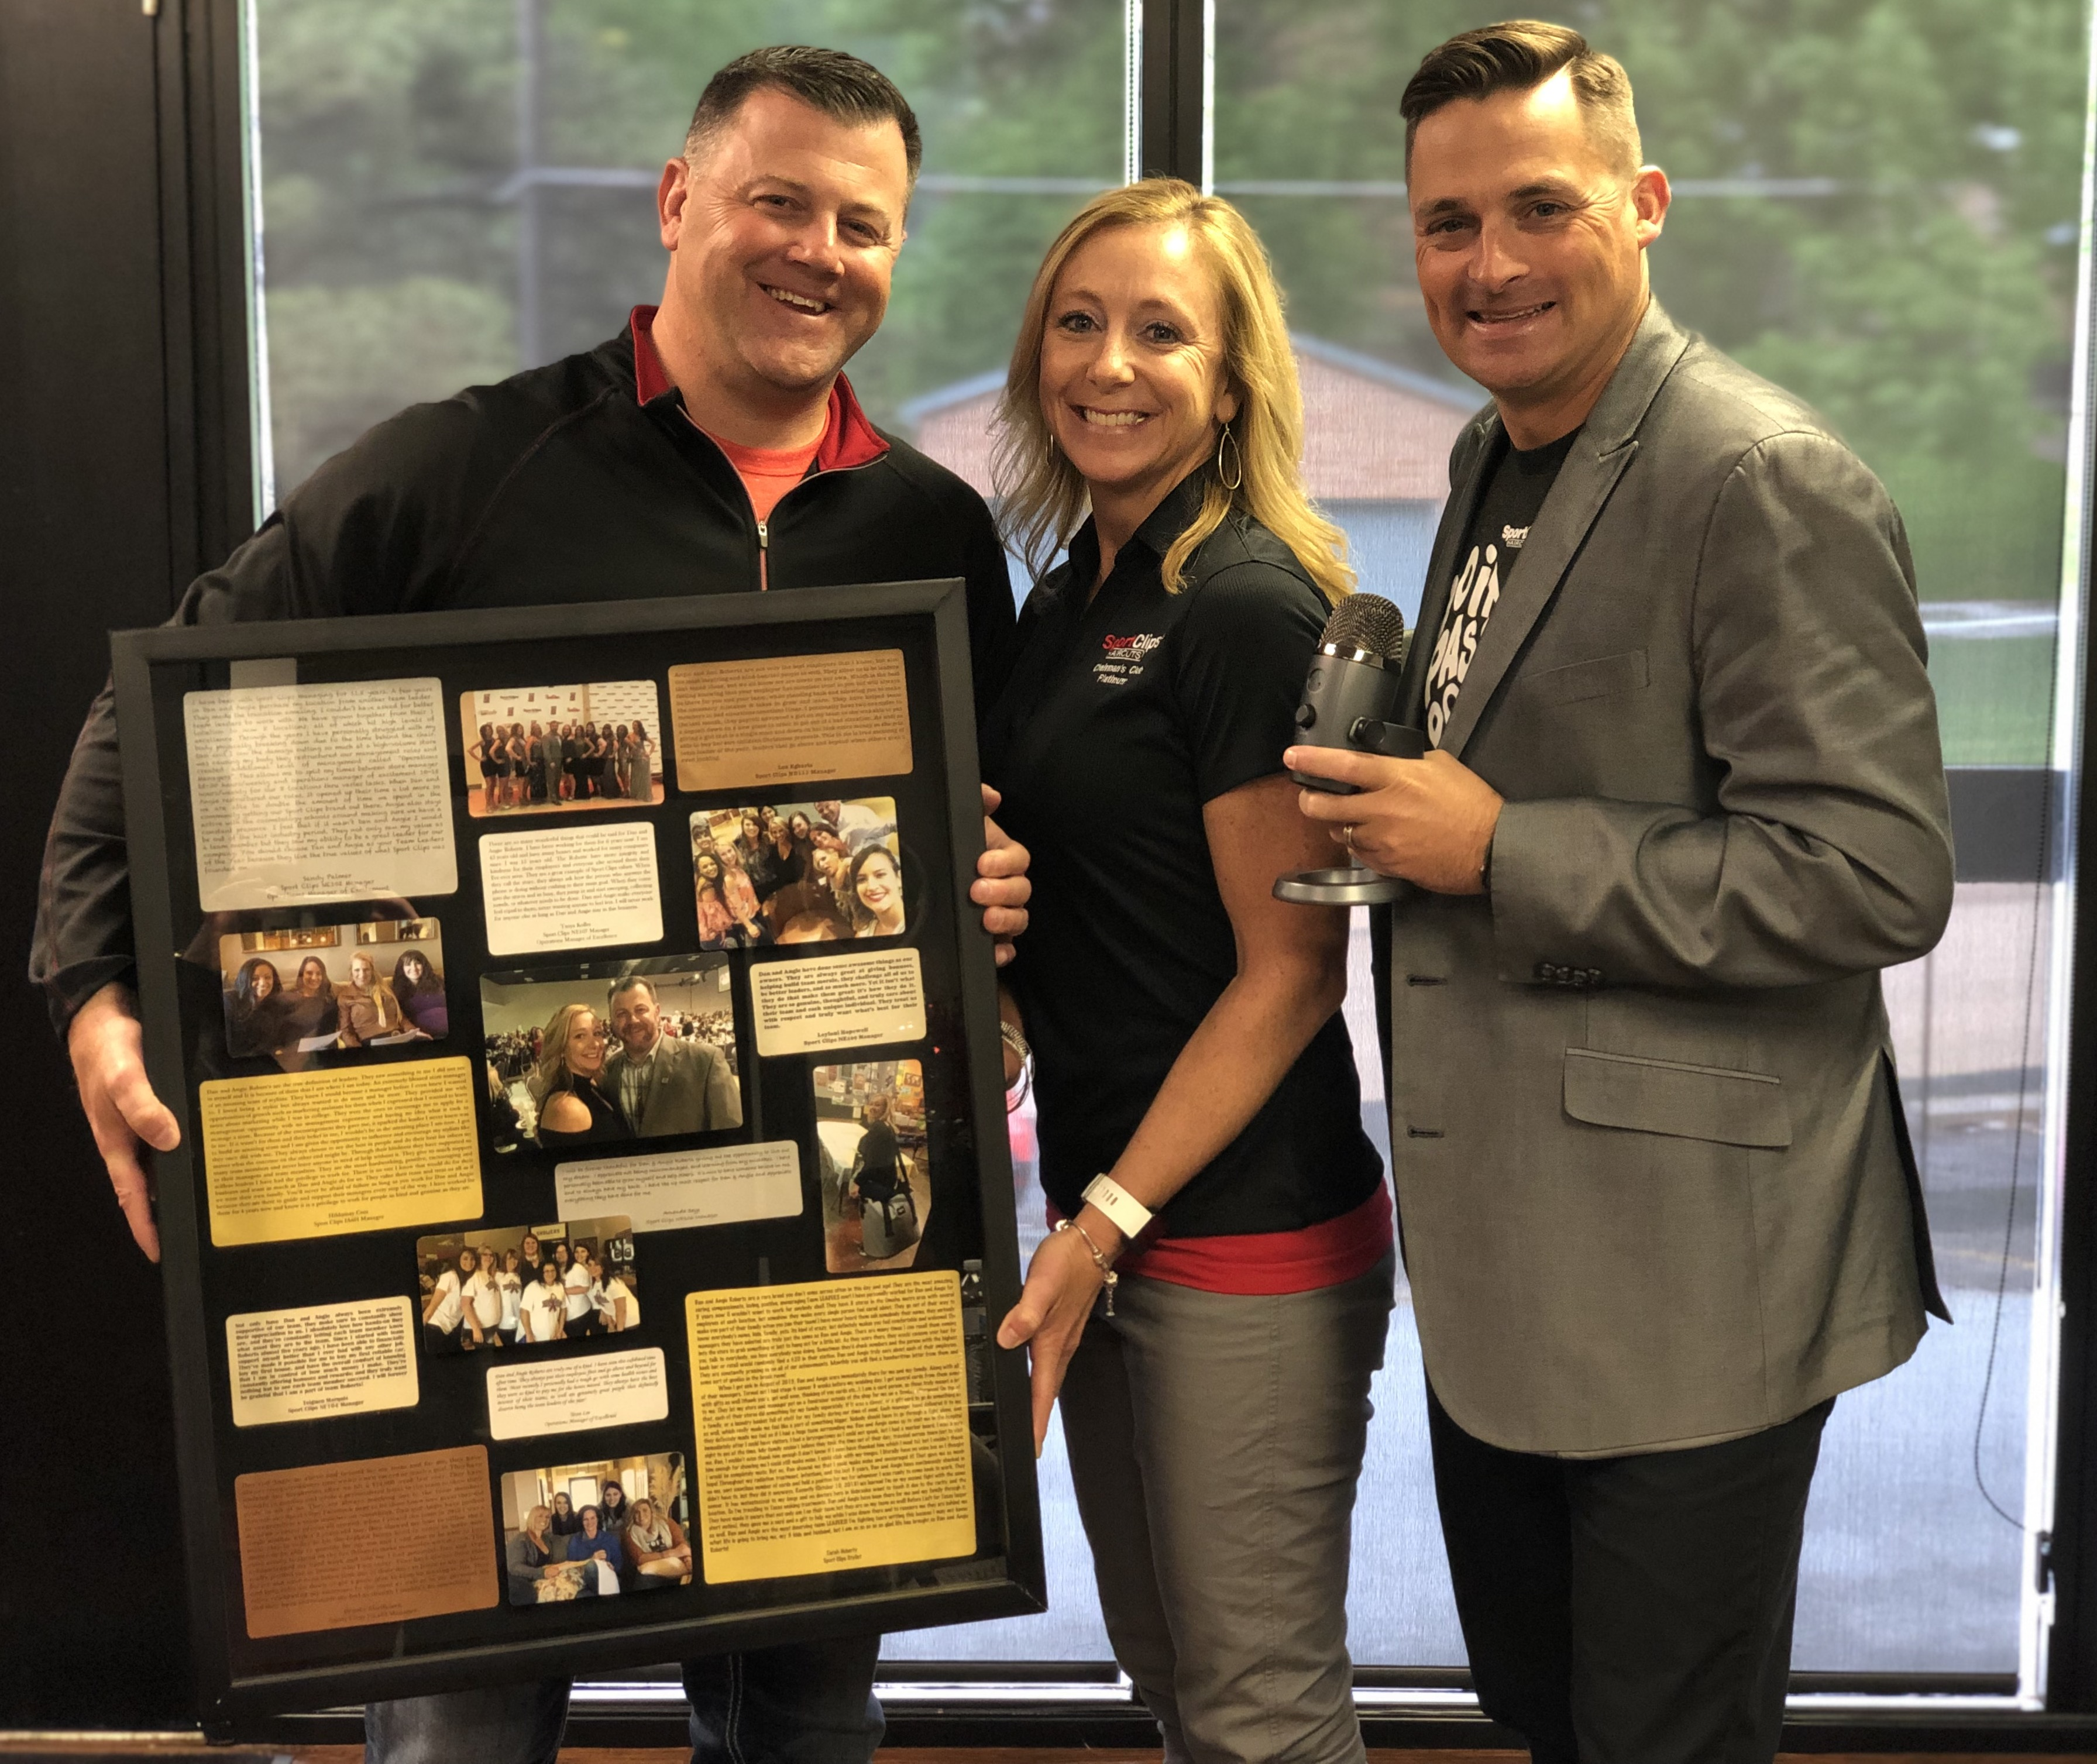 Chad Jordan with Dan and Angie Roberts holding a shadow box of photos